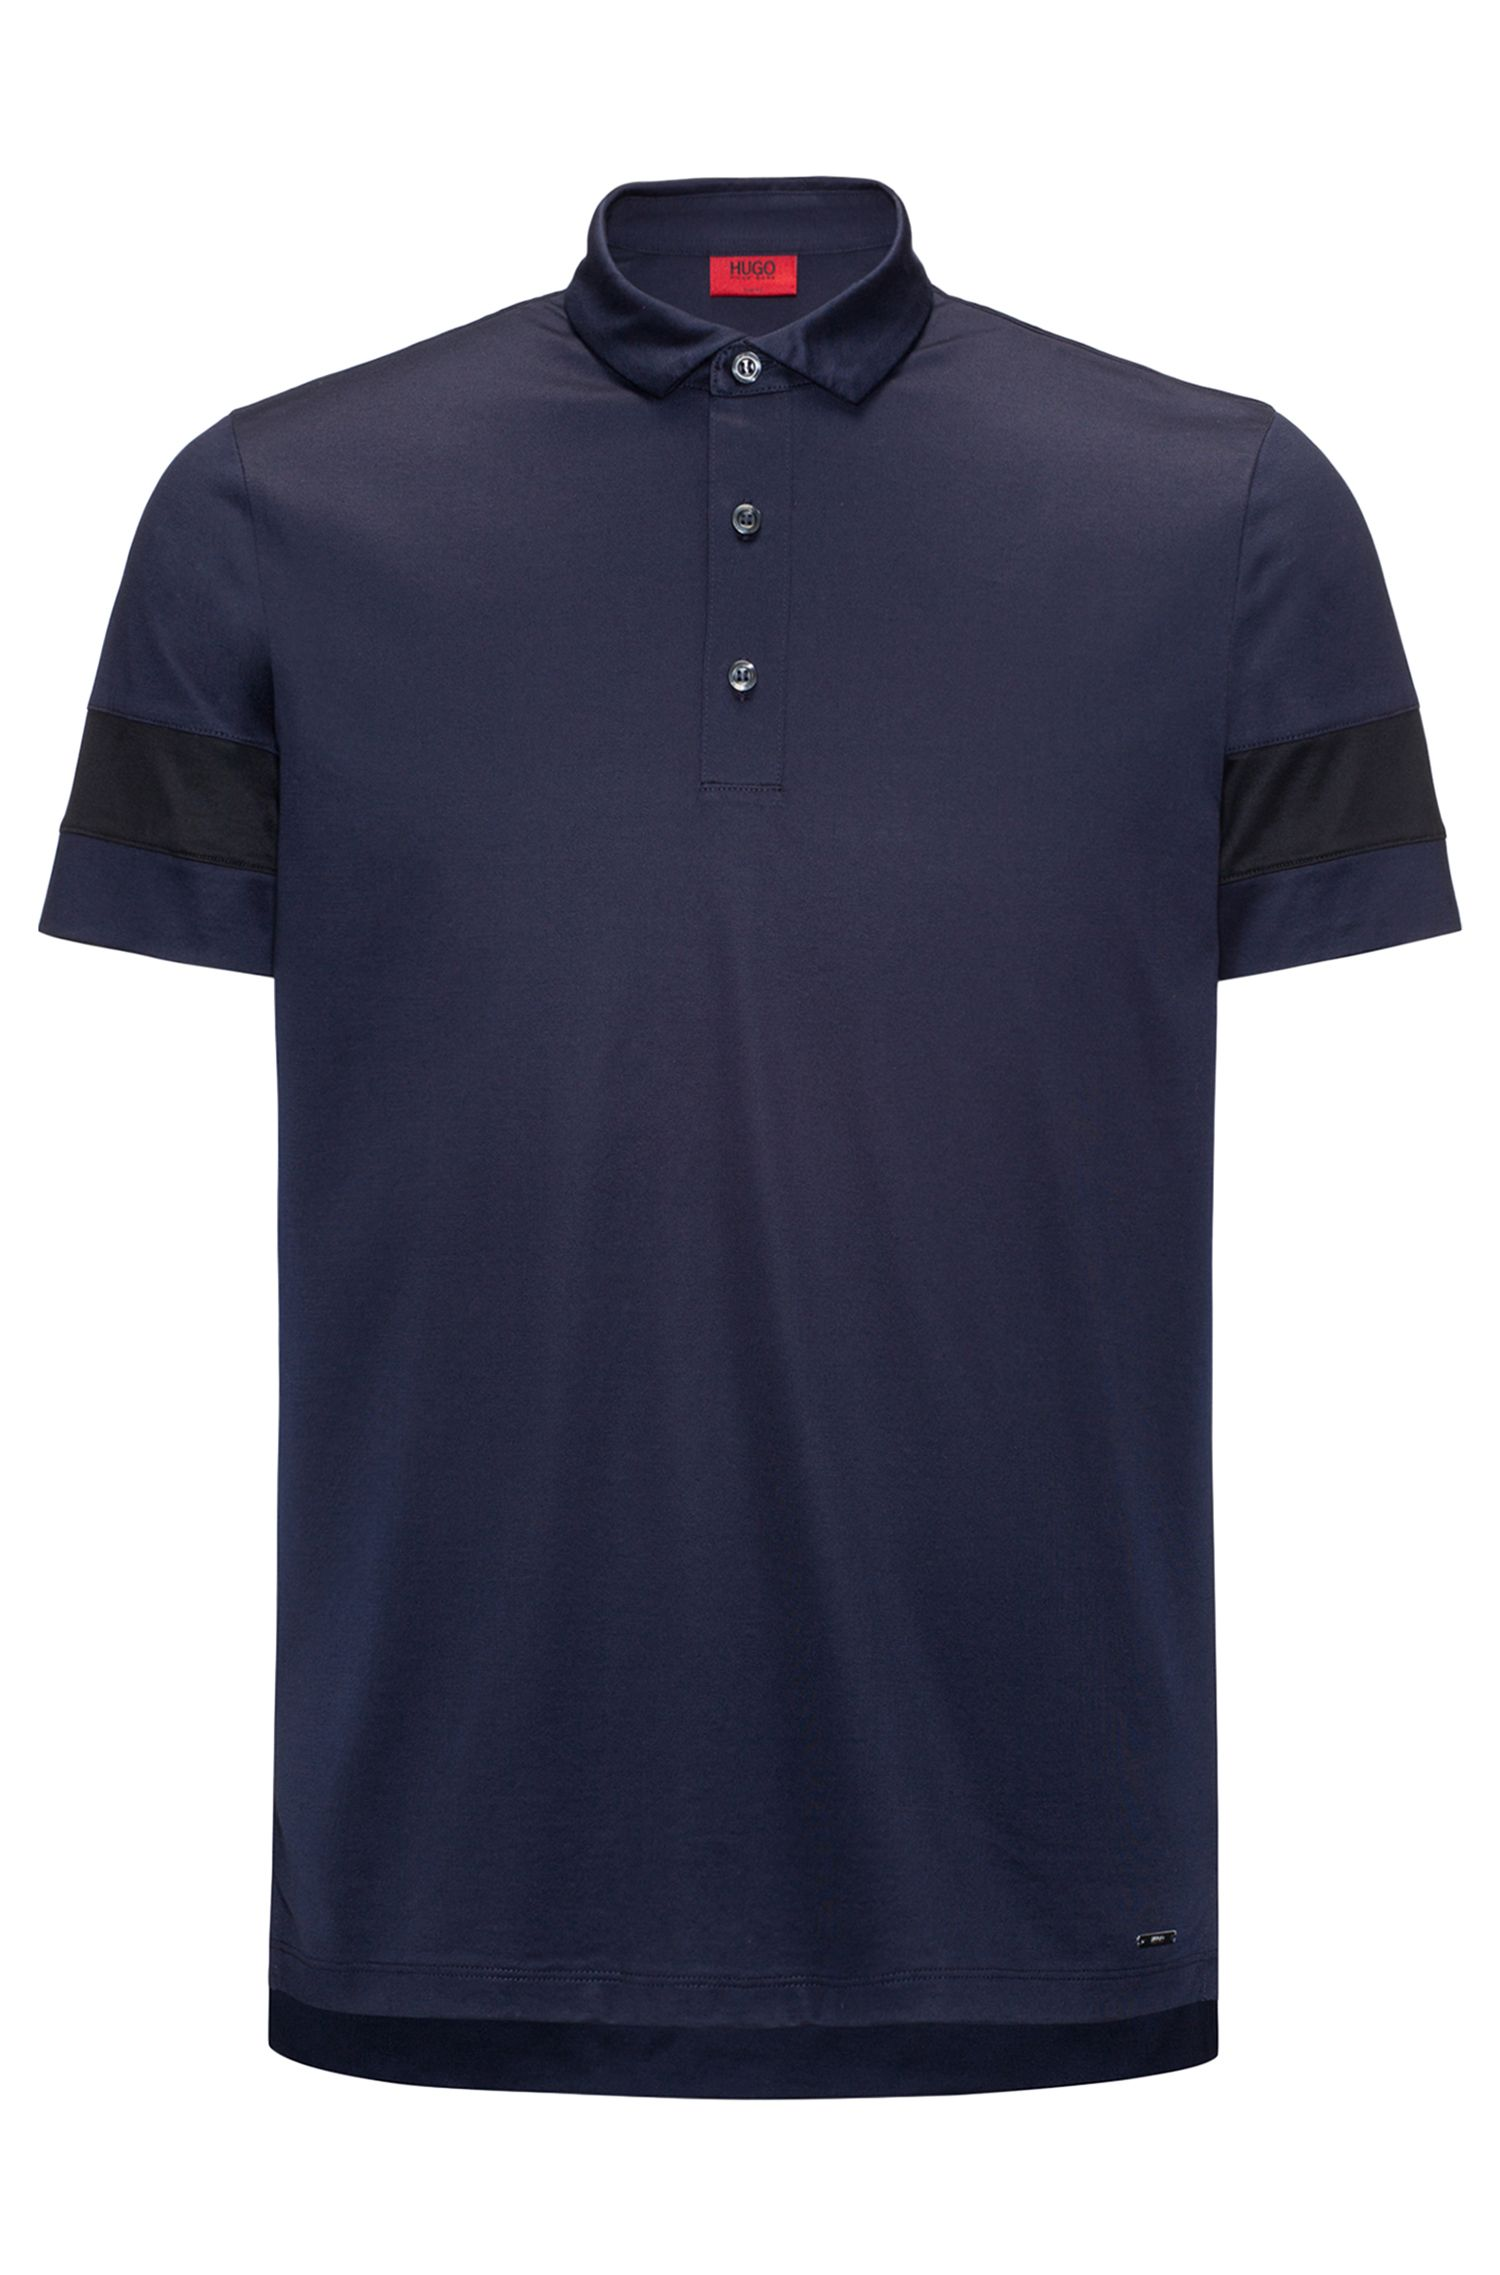 Thick-Striped Mercerized Cotton Polo Shirt, Slim Fit | Drooks